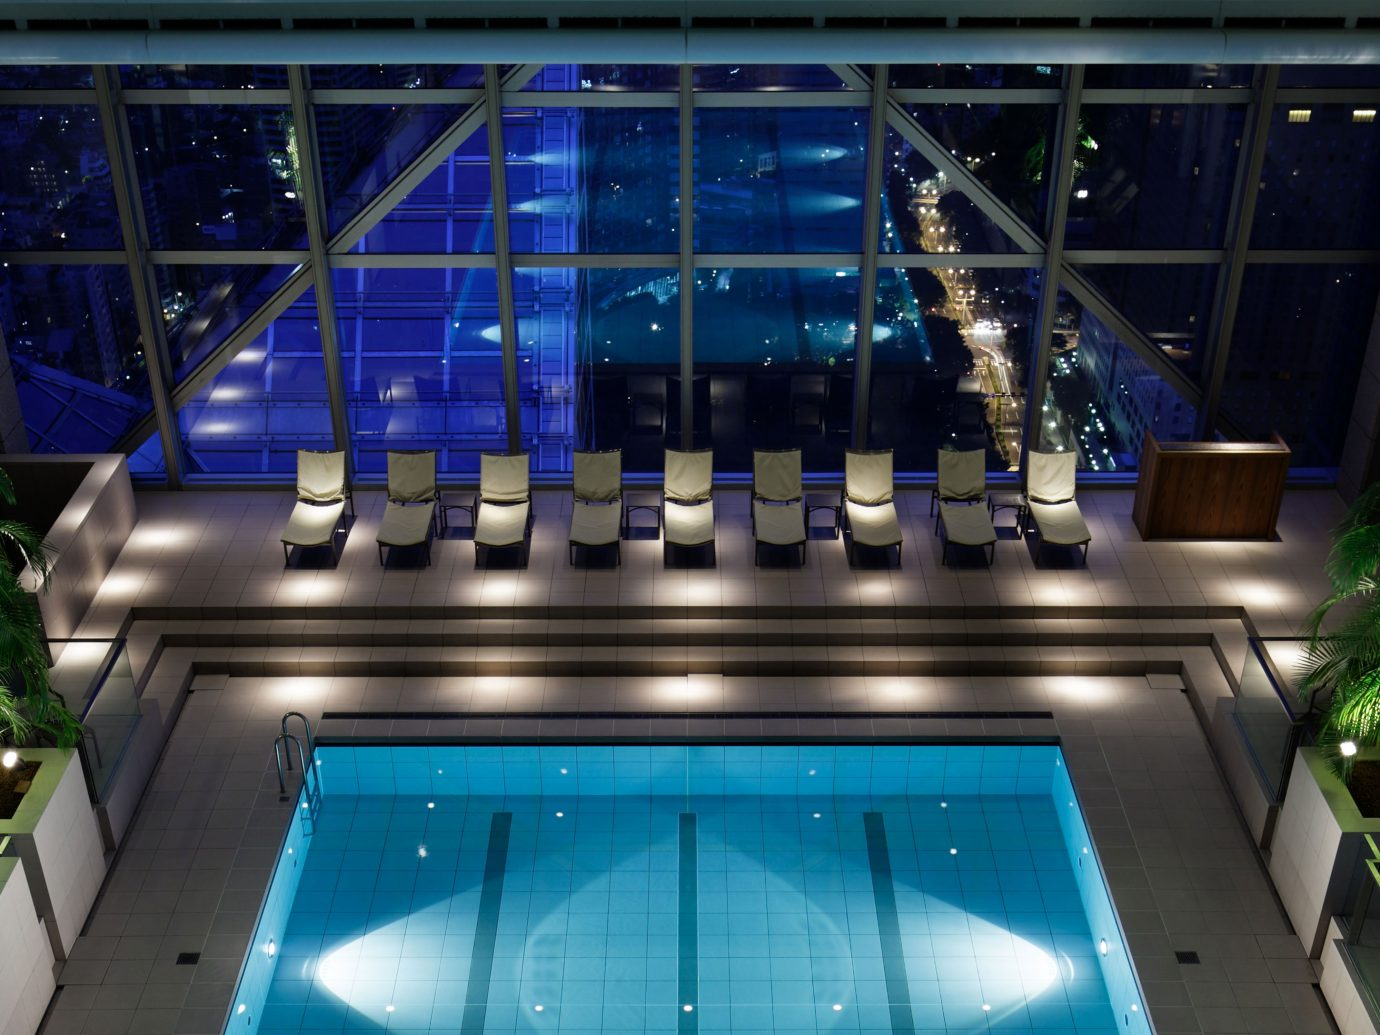 The pool at the Park Hyatt Tokyo, the pool from Lost in Translation